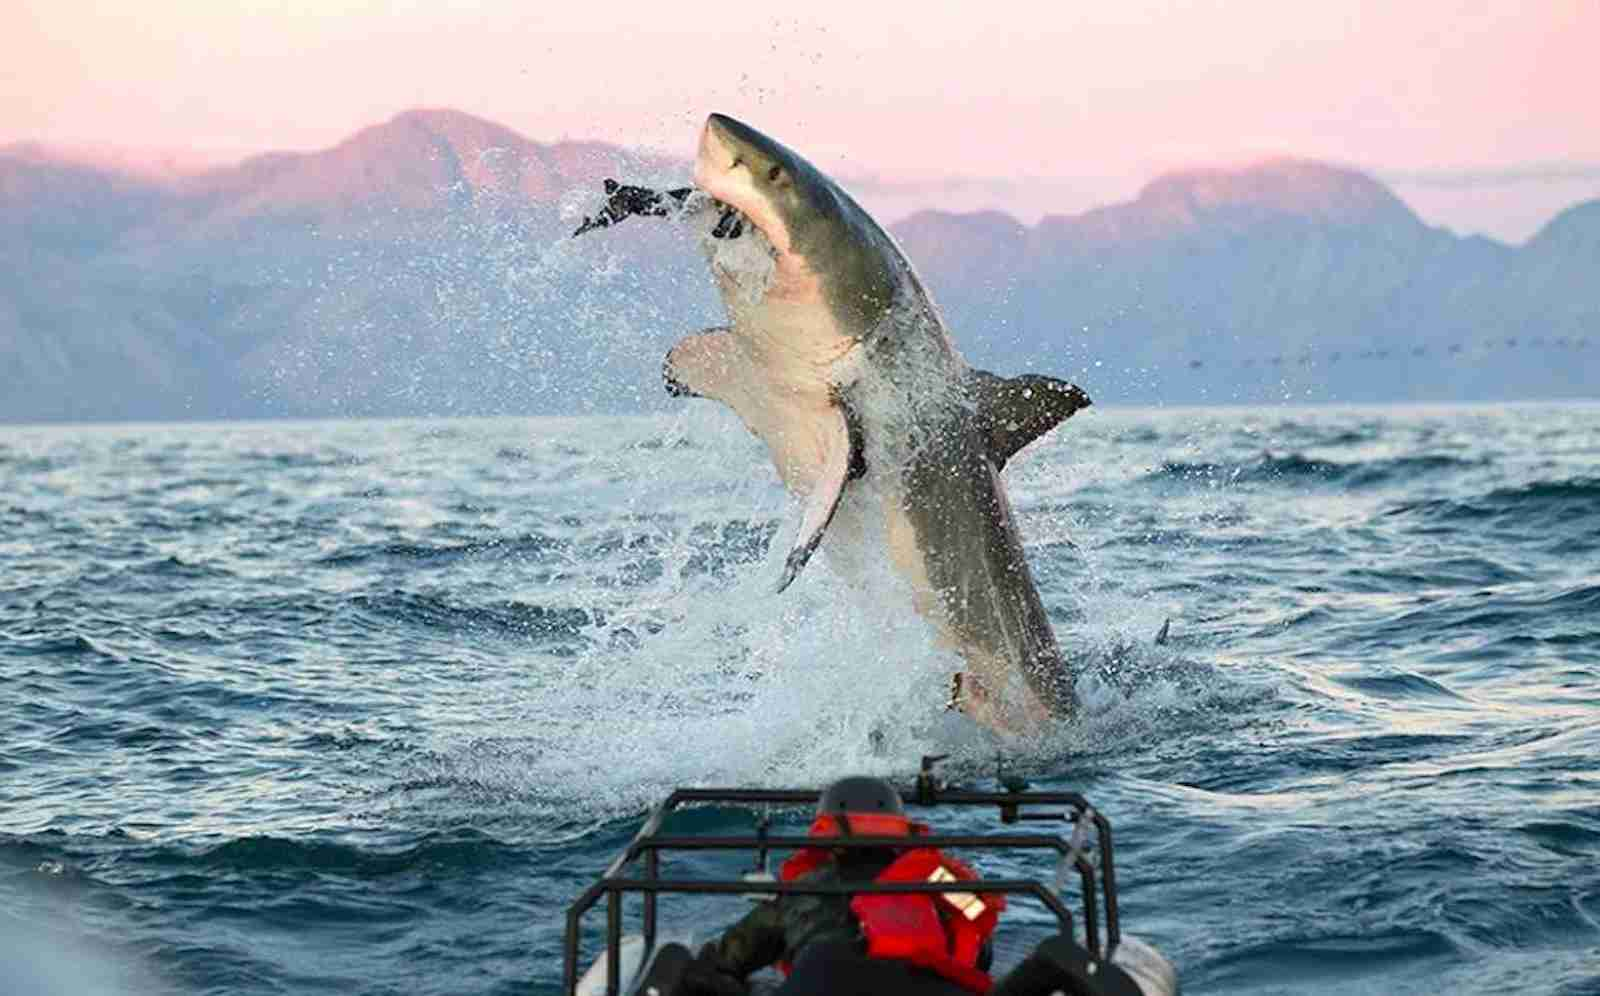 (Photo courtesy of Chris Fallows/Apex Shark Expeditions)